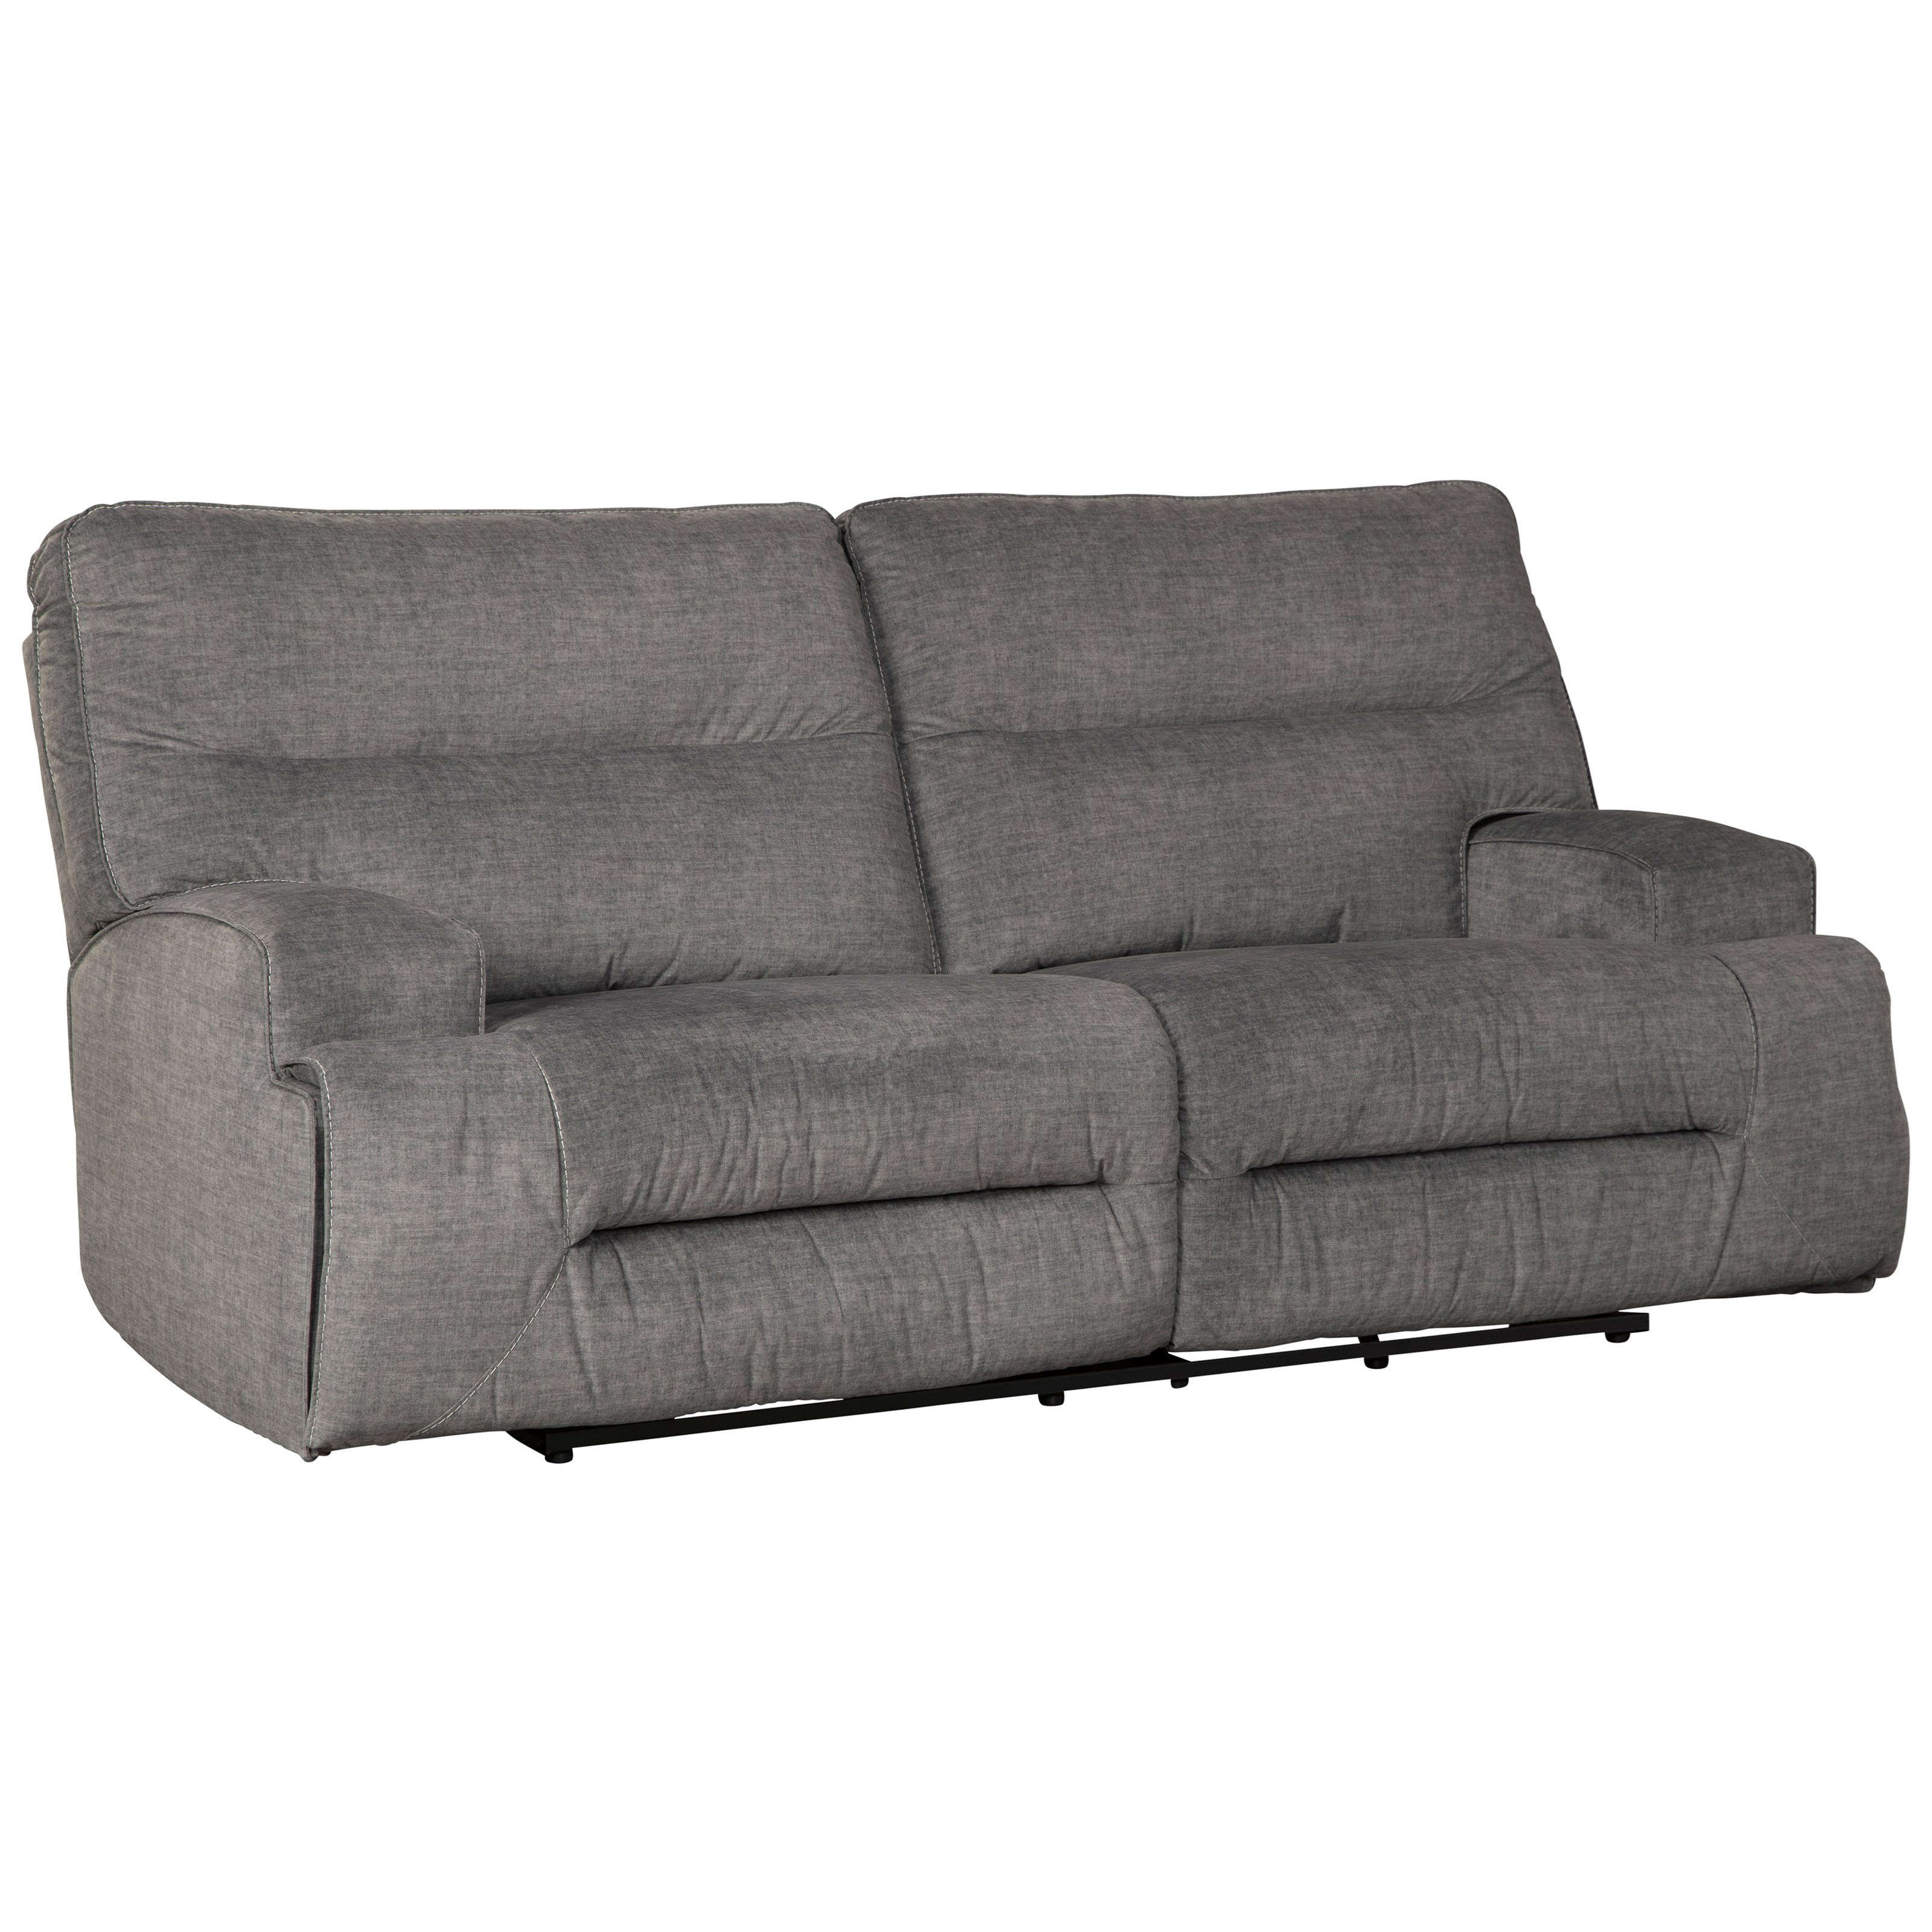 Coombs 2-Seat Reclining Sofa by Benchcraft at Value City Furniture